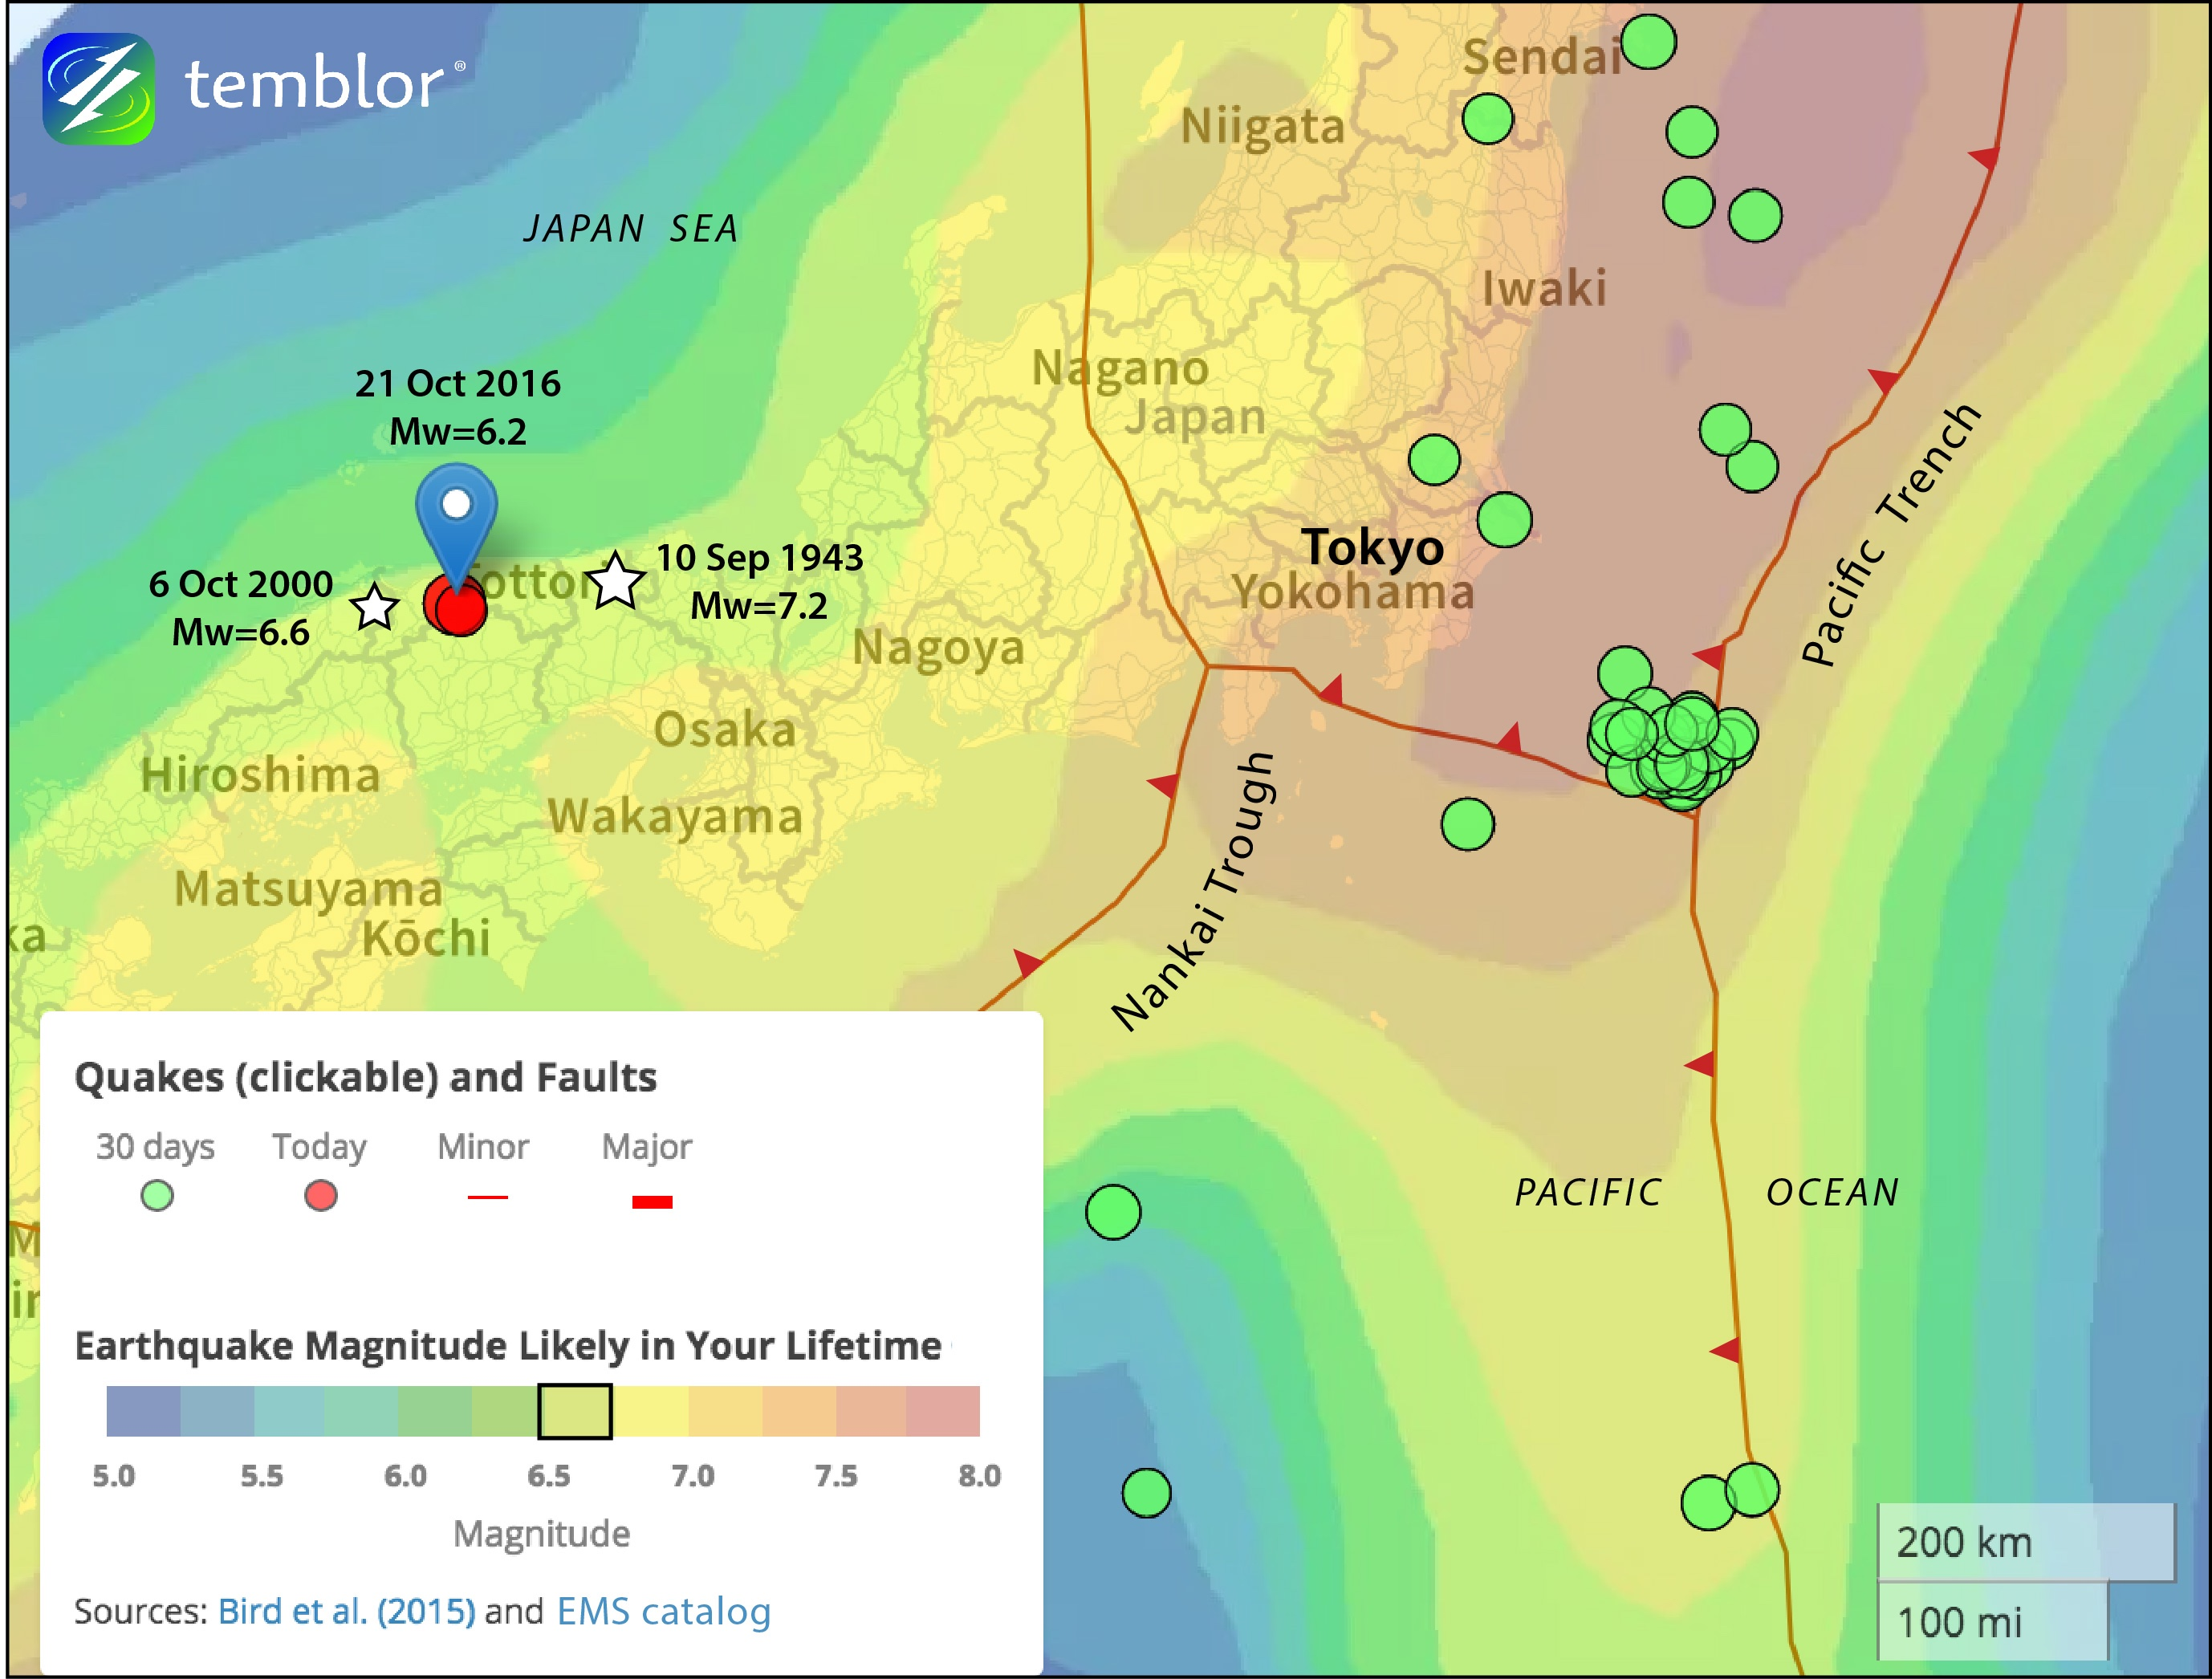 japan_earthquake_map_global_earthquake_model